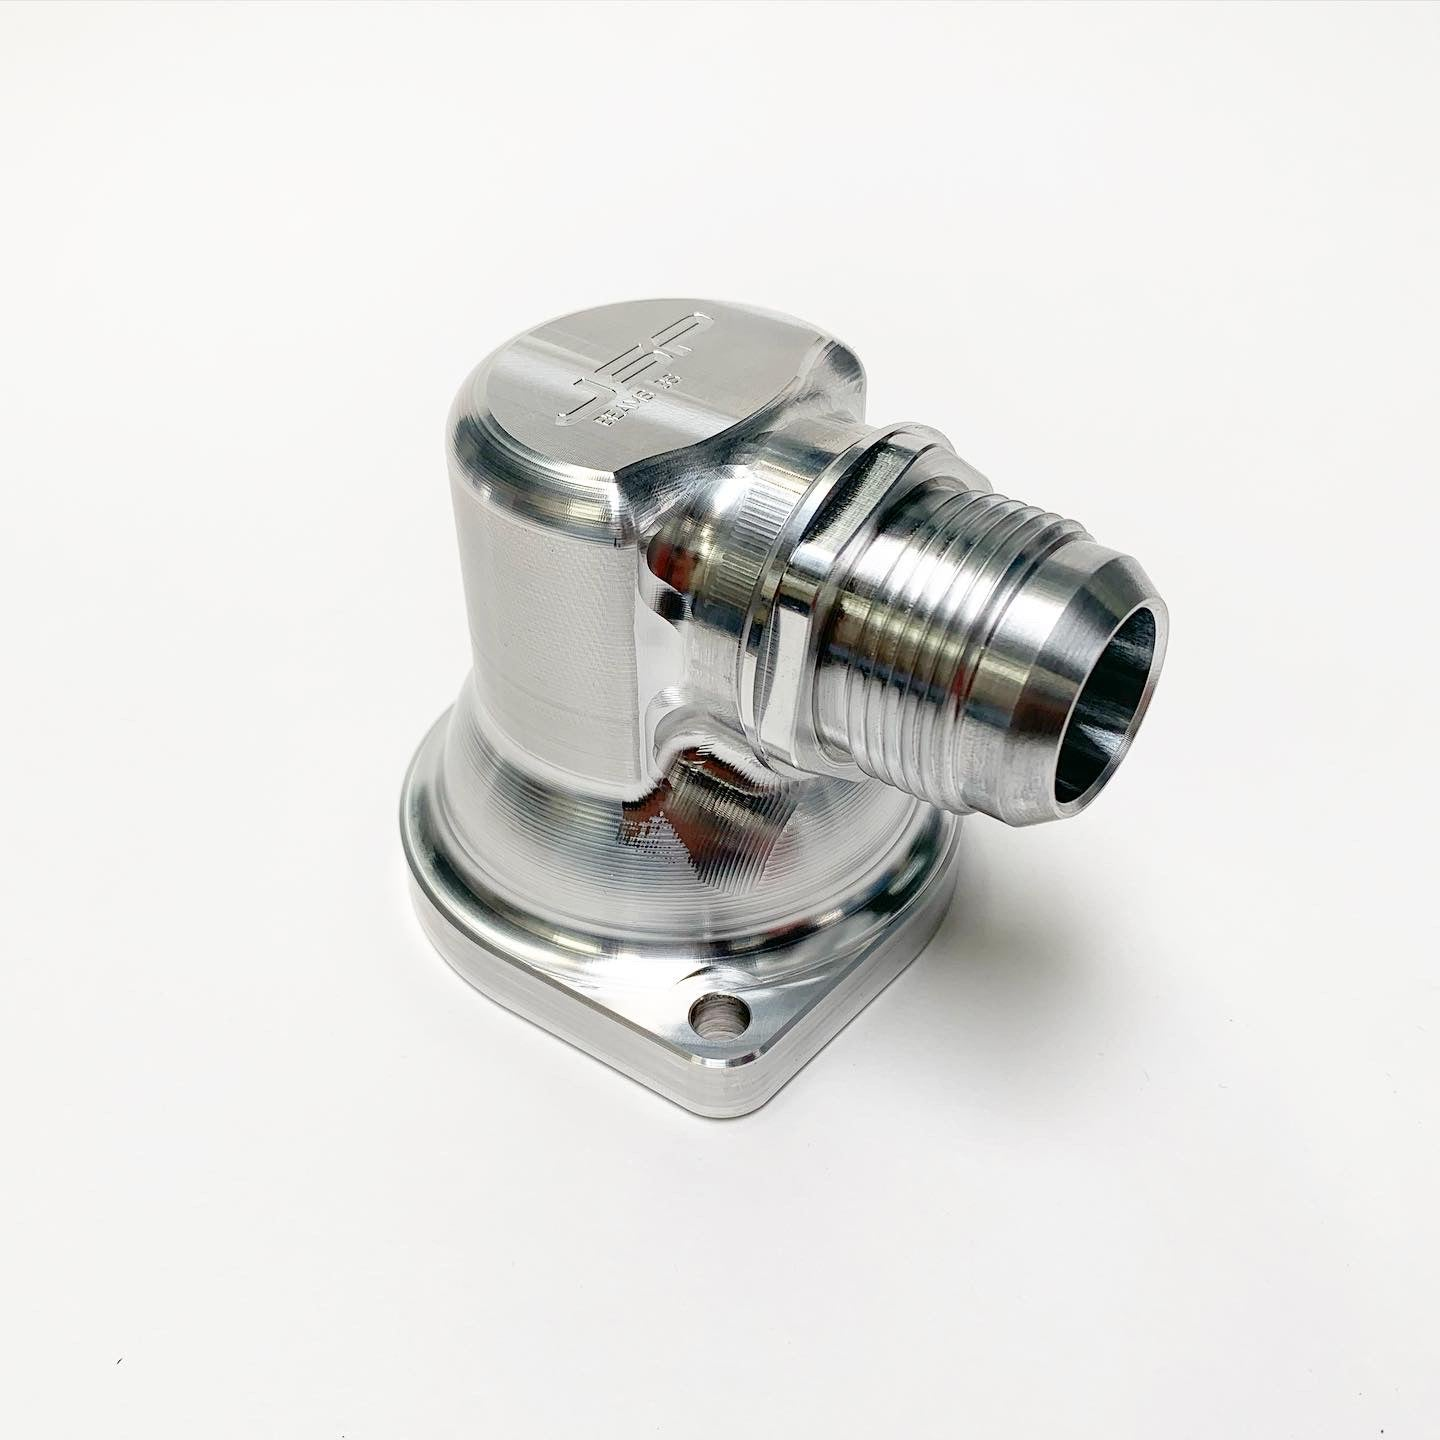 Beams 3SGE billet short thermostat housing